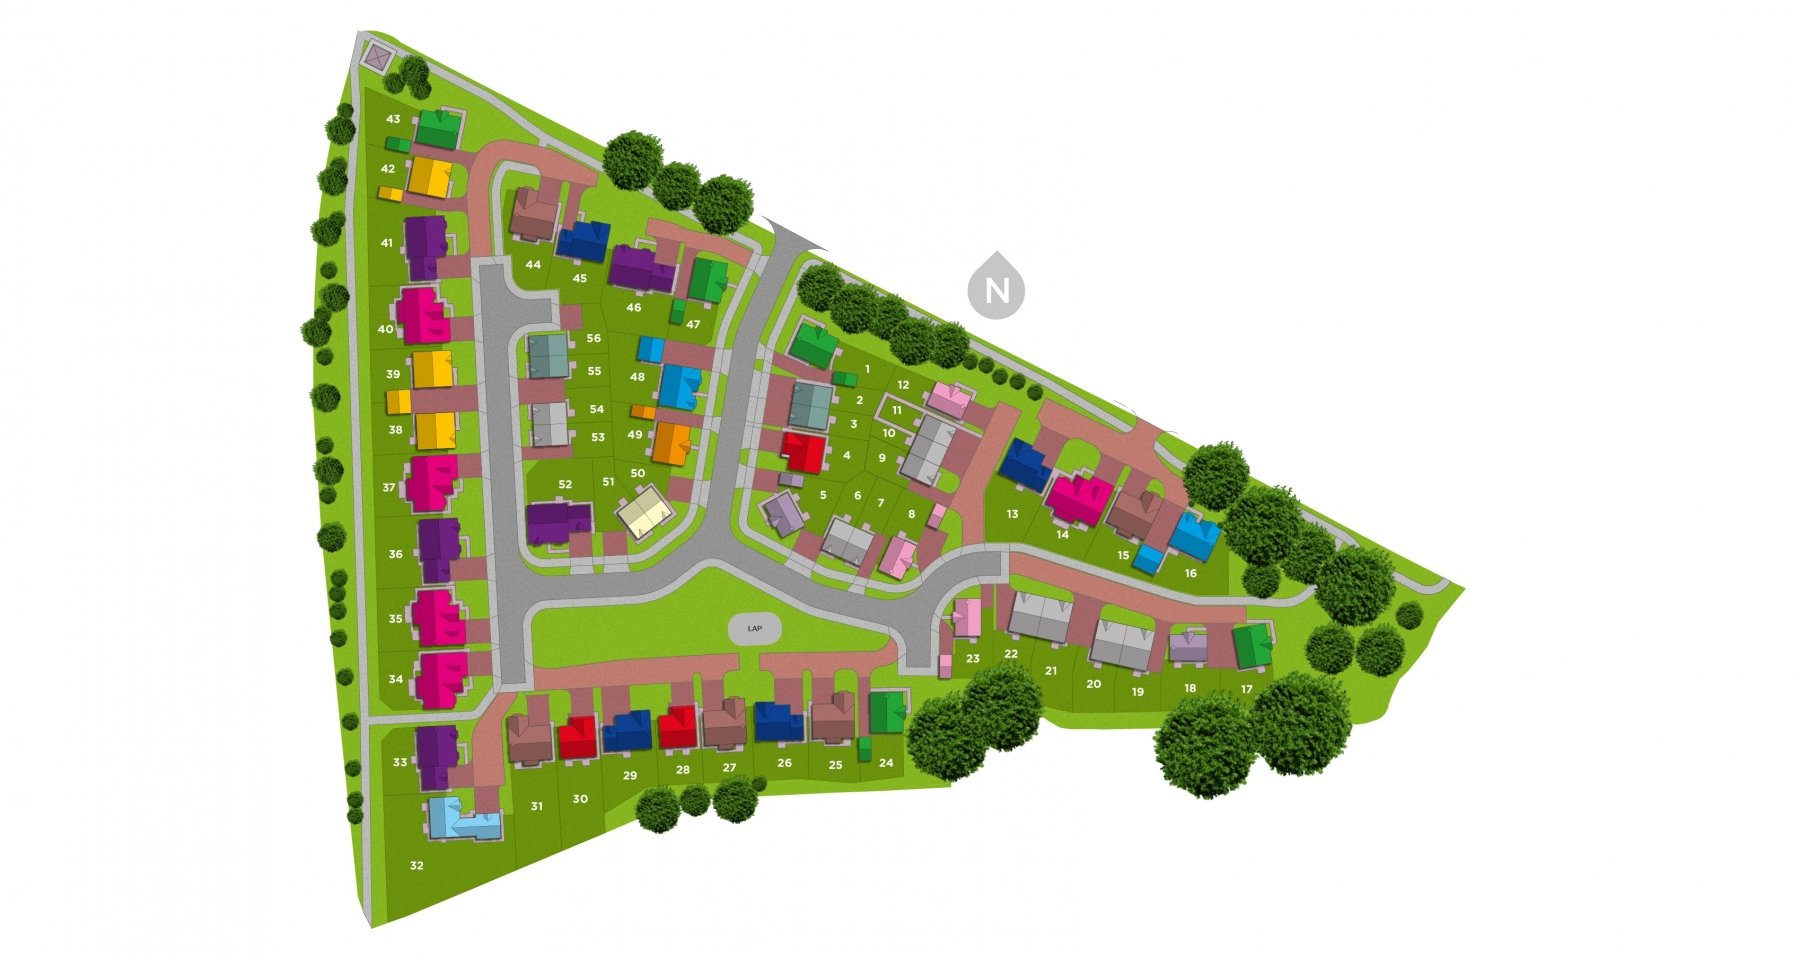 Kinnerton Meadows Site Plan